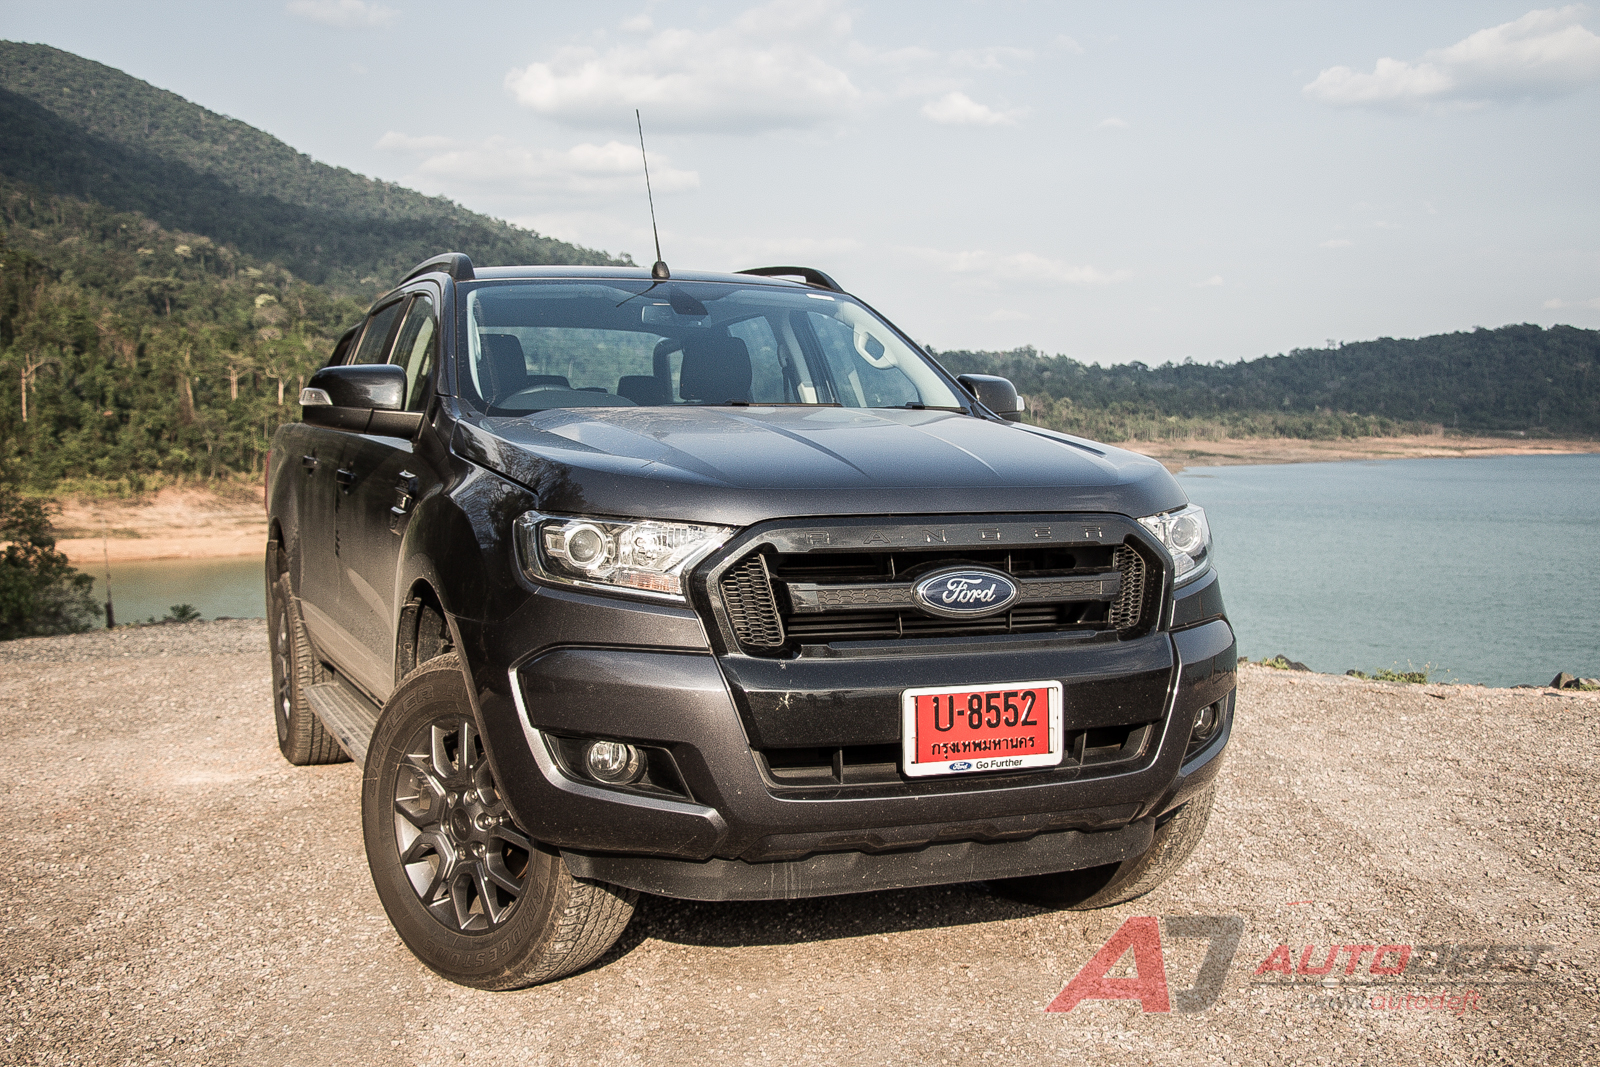 Ford Ranger Hi-Rider FX4 2.2 AT